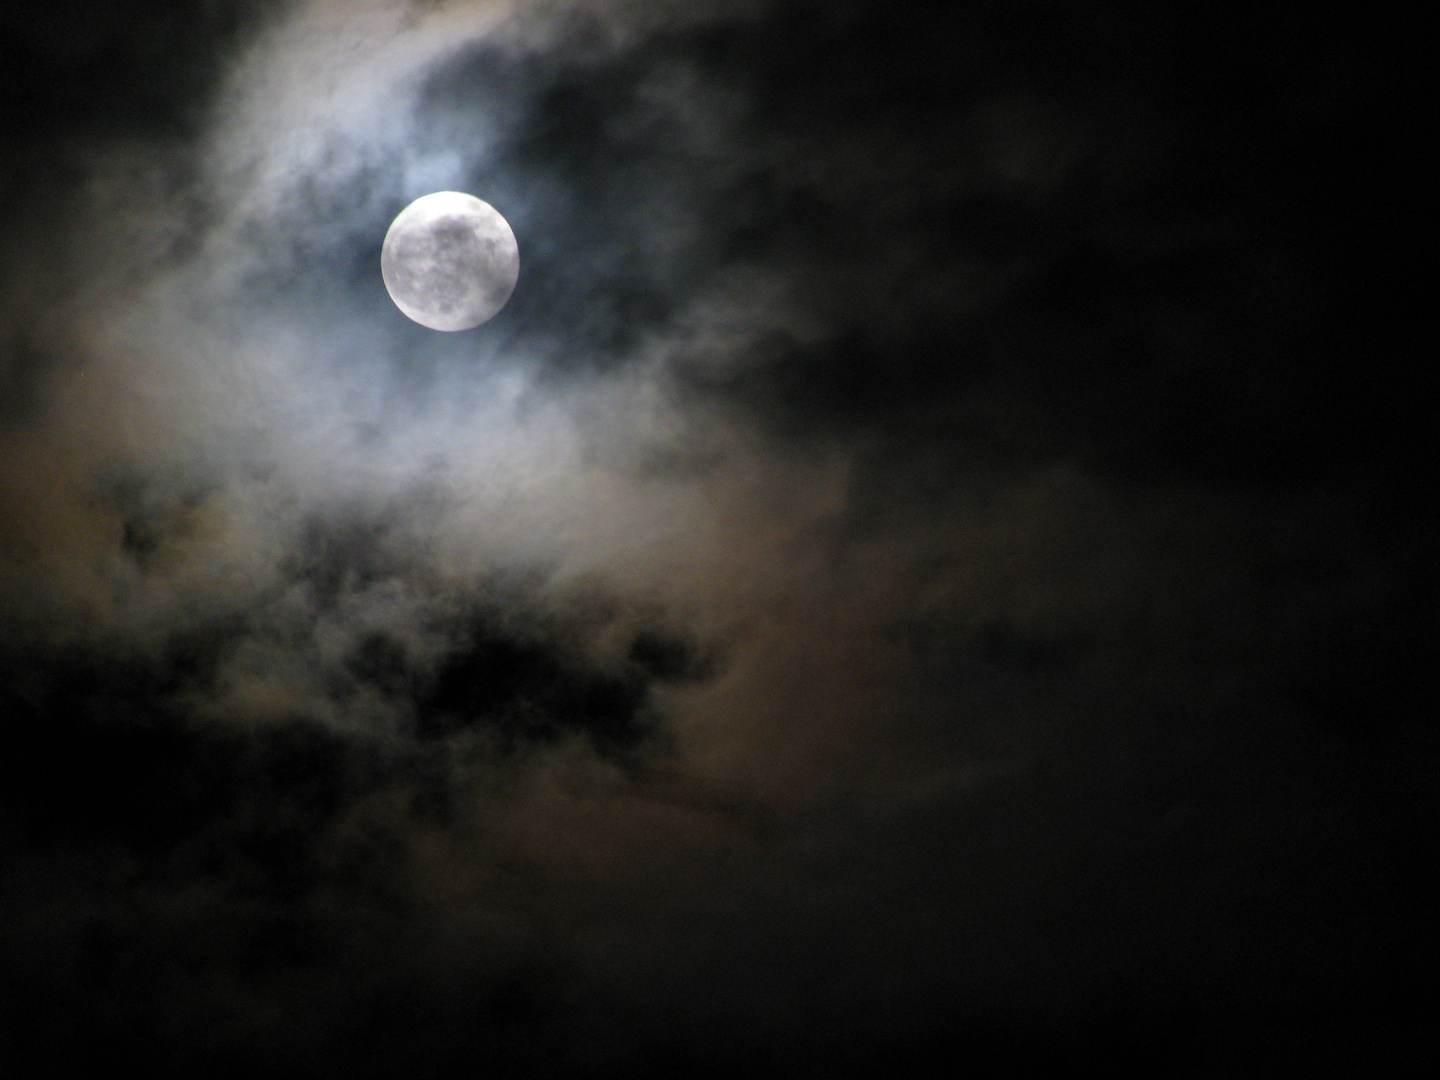 Vollmond Silvester 09/10